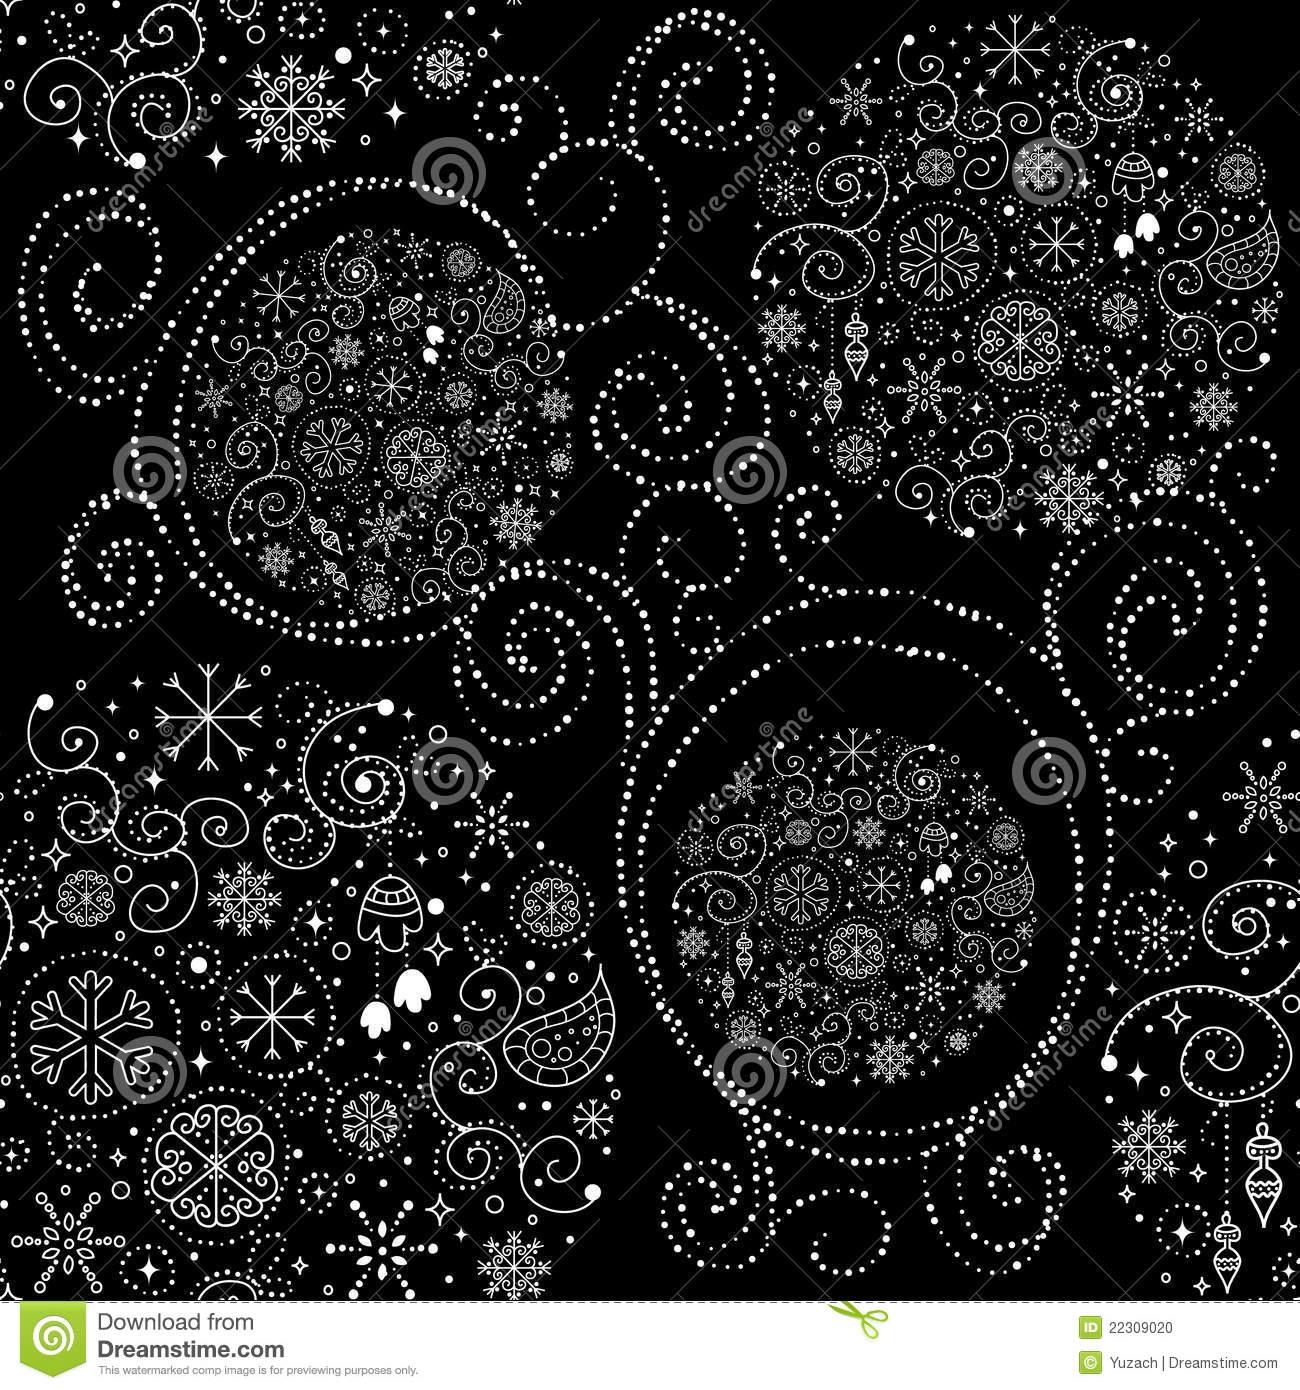 Line art design Christmas seamless pattern